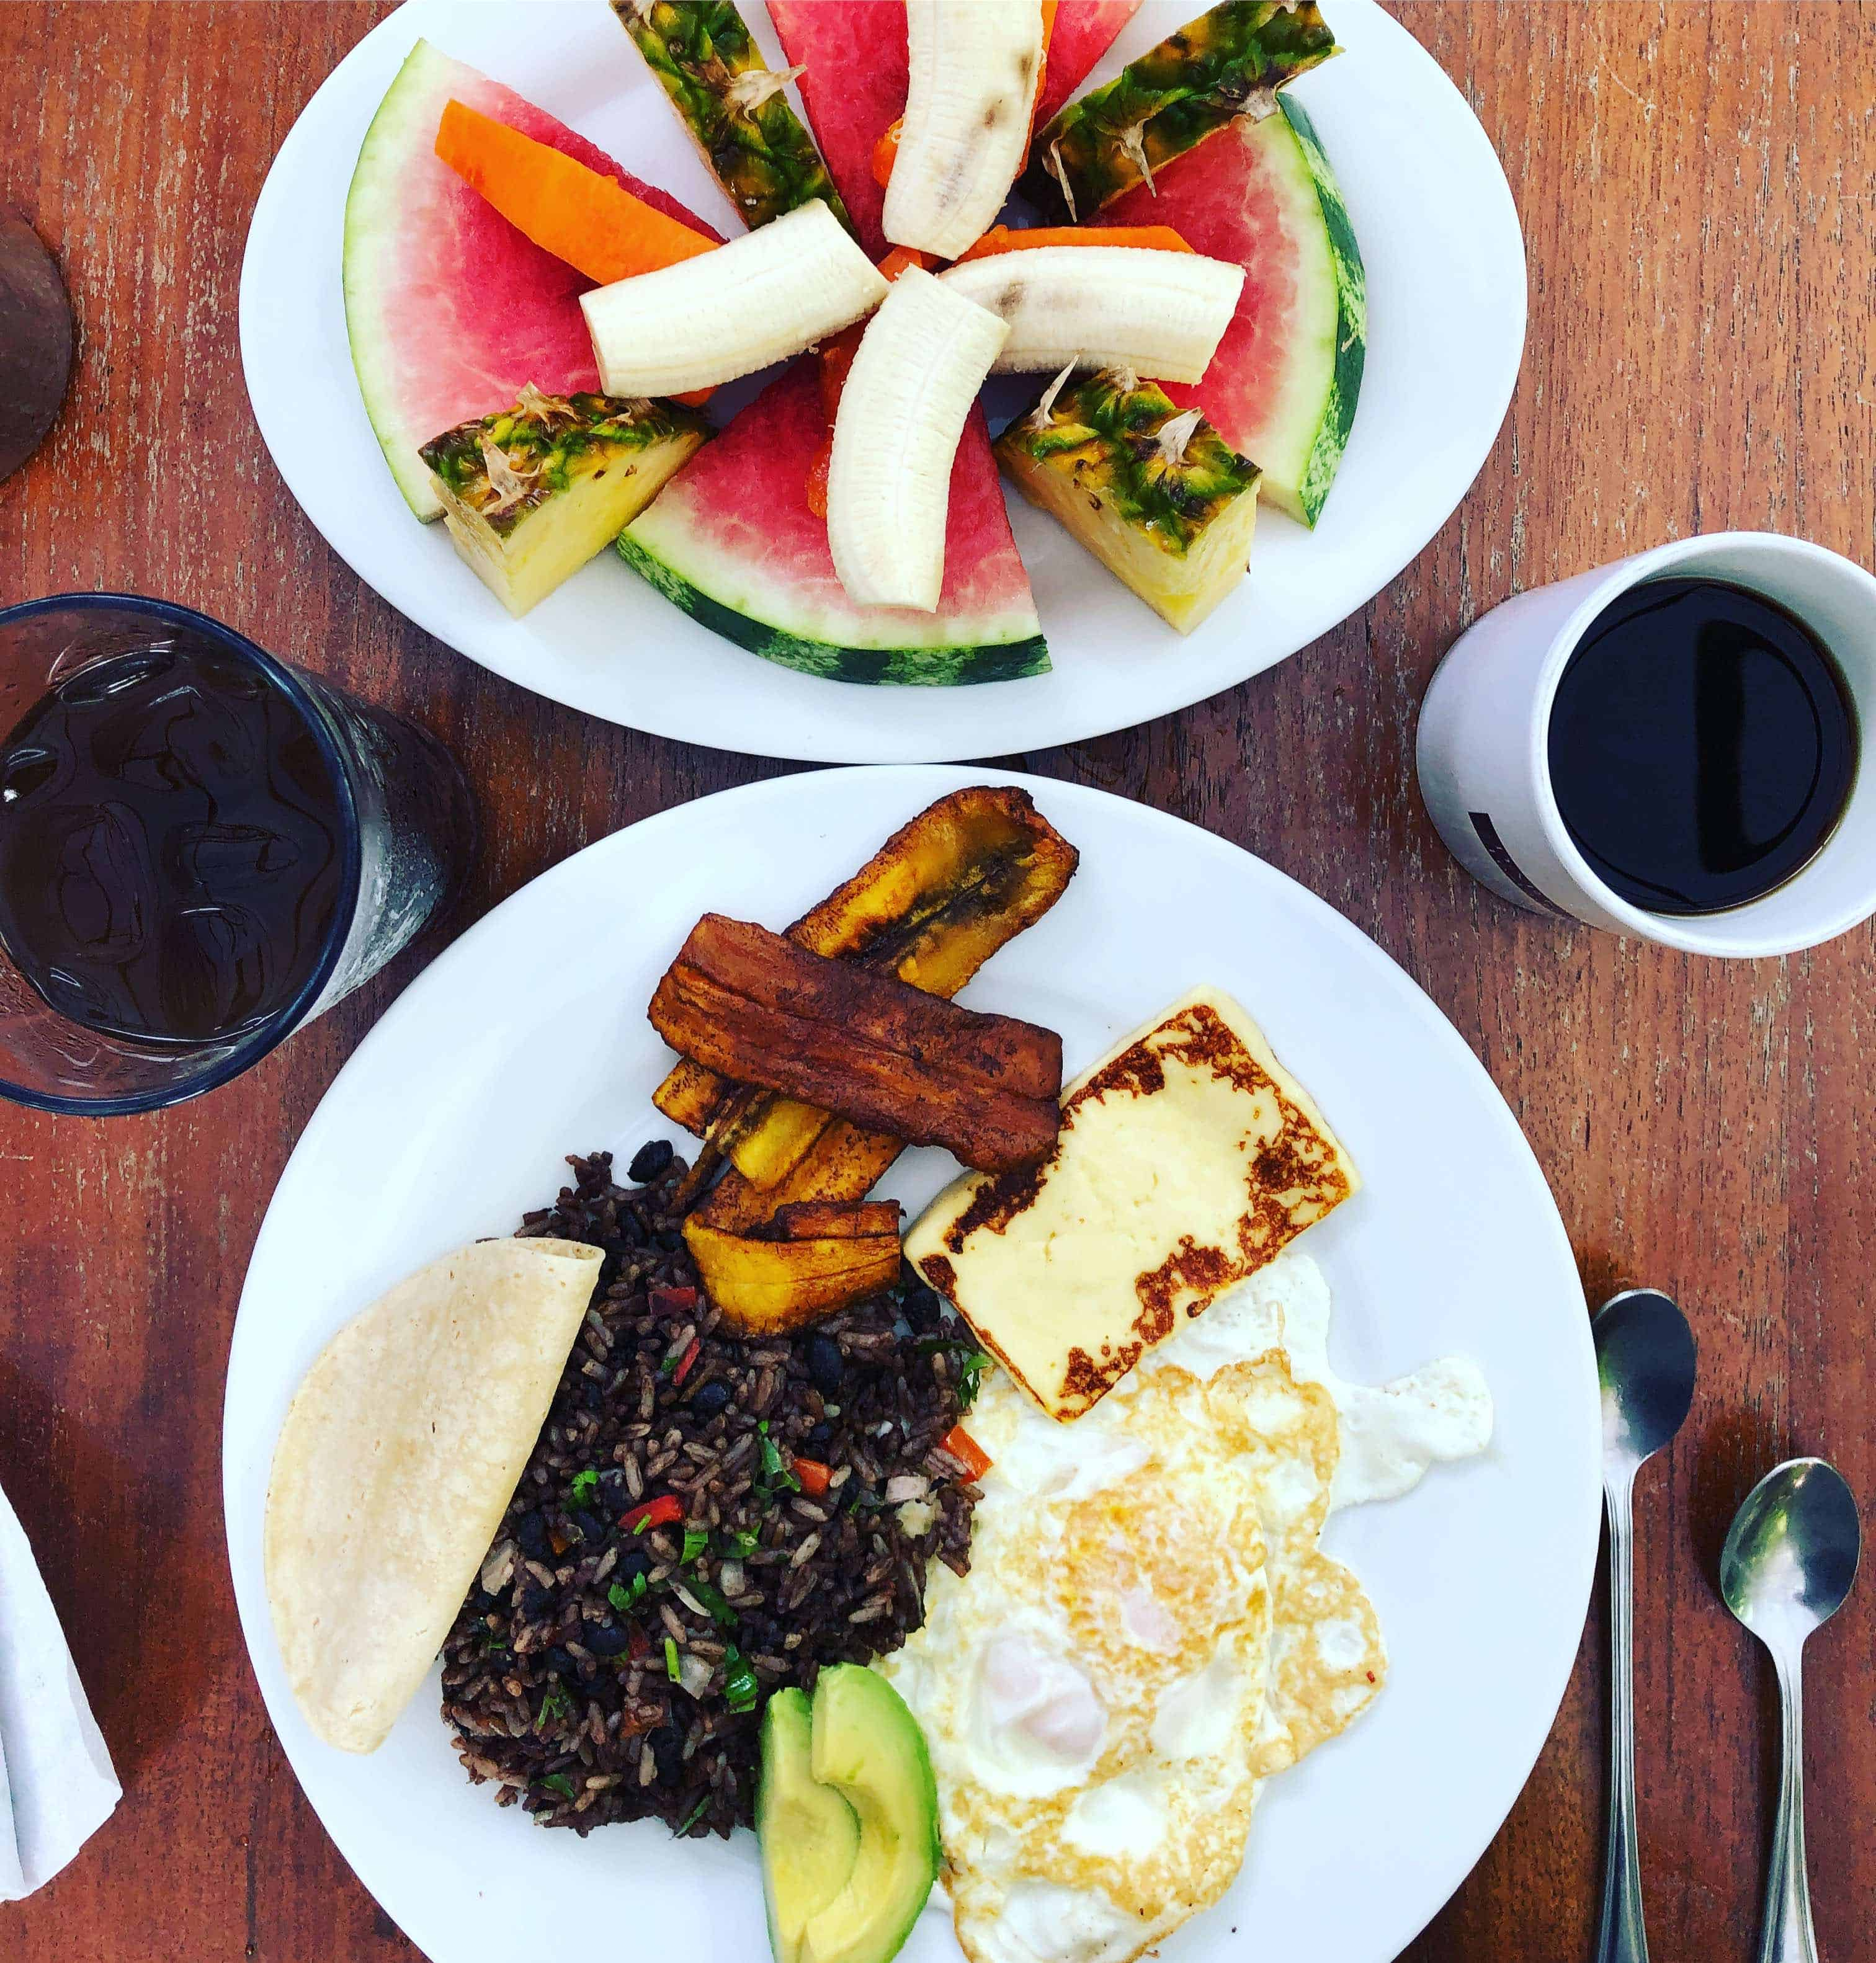 Gallo pinto and fruit